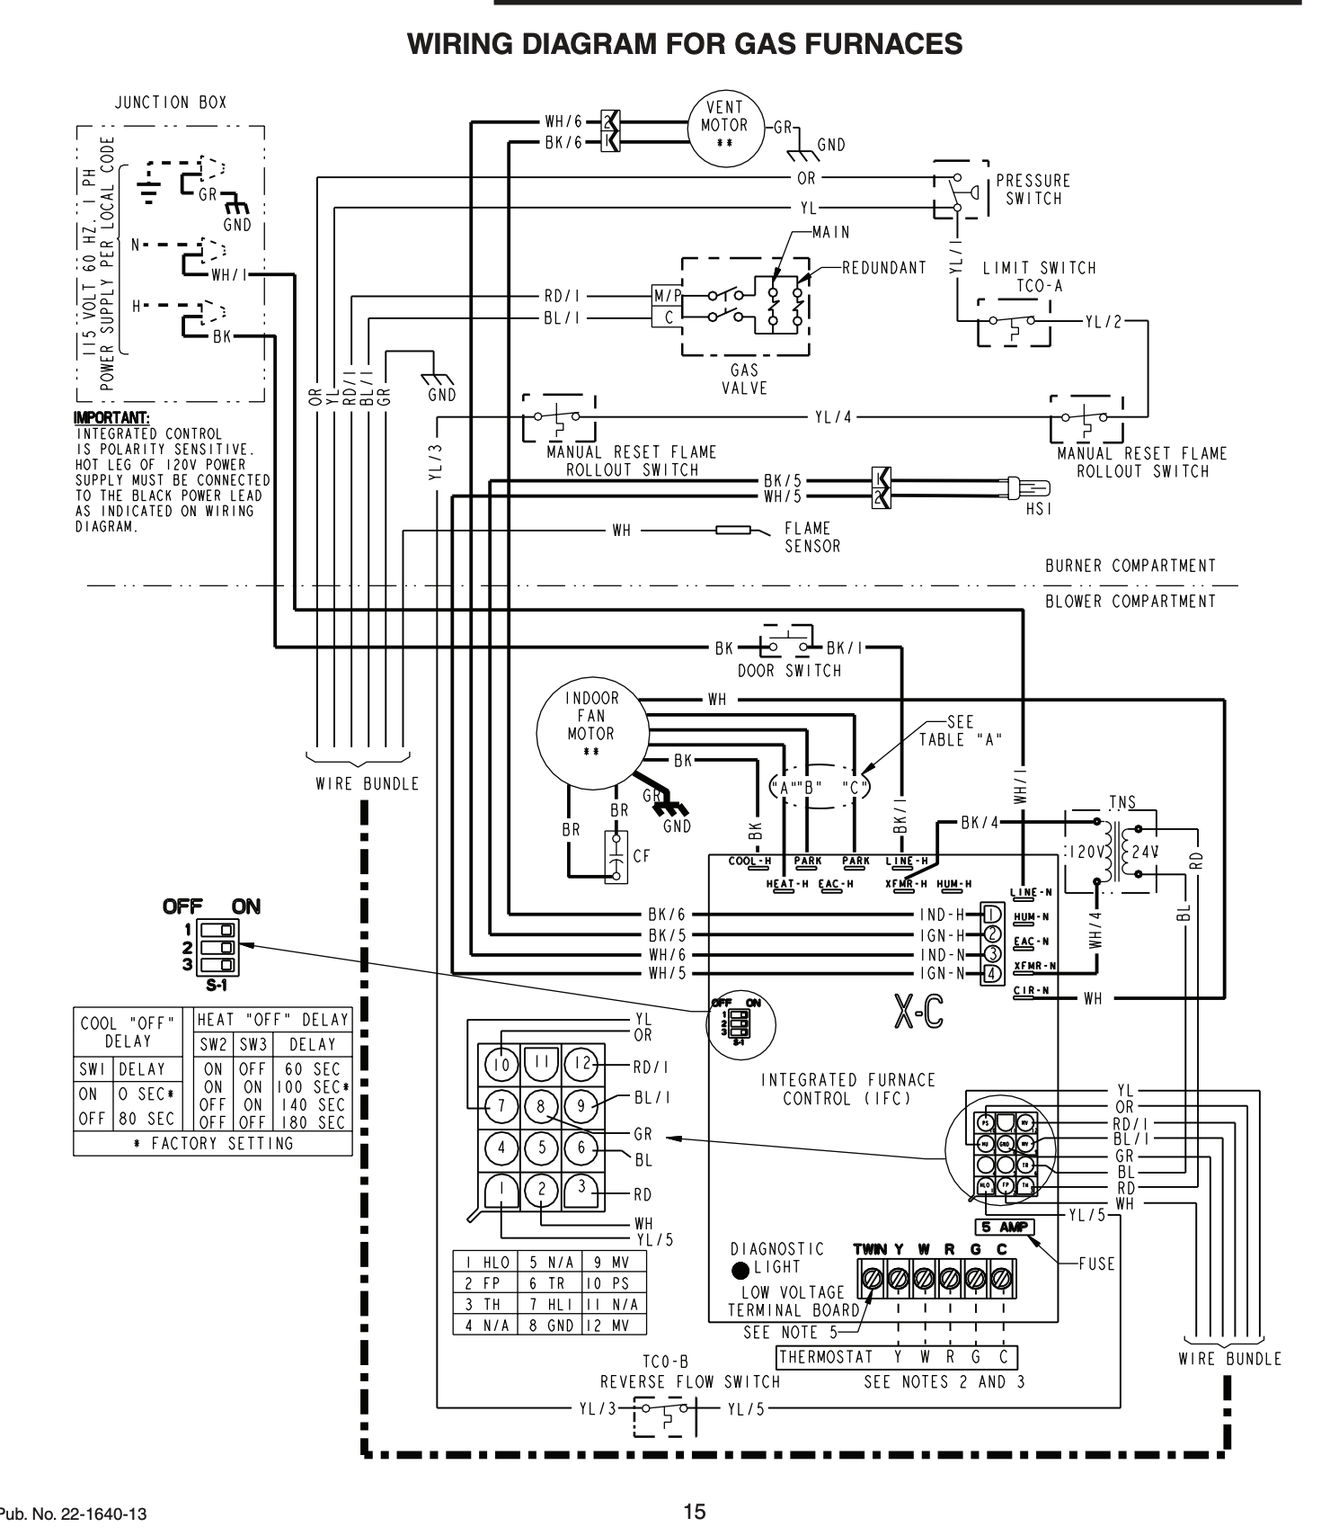 Fan & Limit Switch Q&A-5 Furnace fan limit control troubleshooting | Hvac Fan Control Wiring Diagrams |  | InspectApedia.com